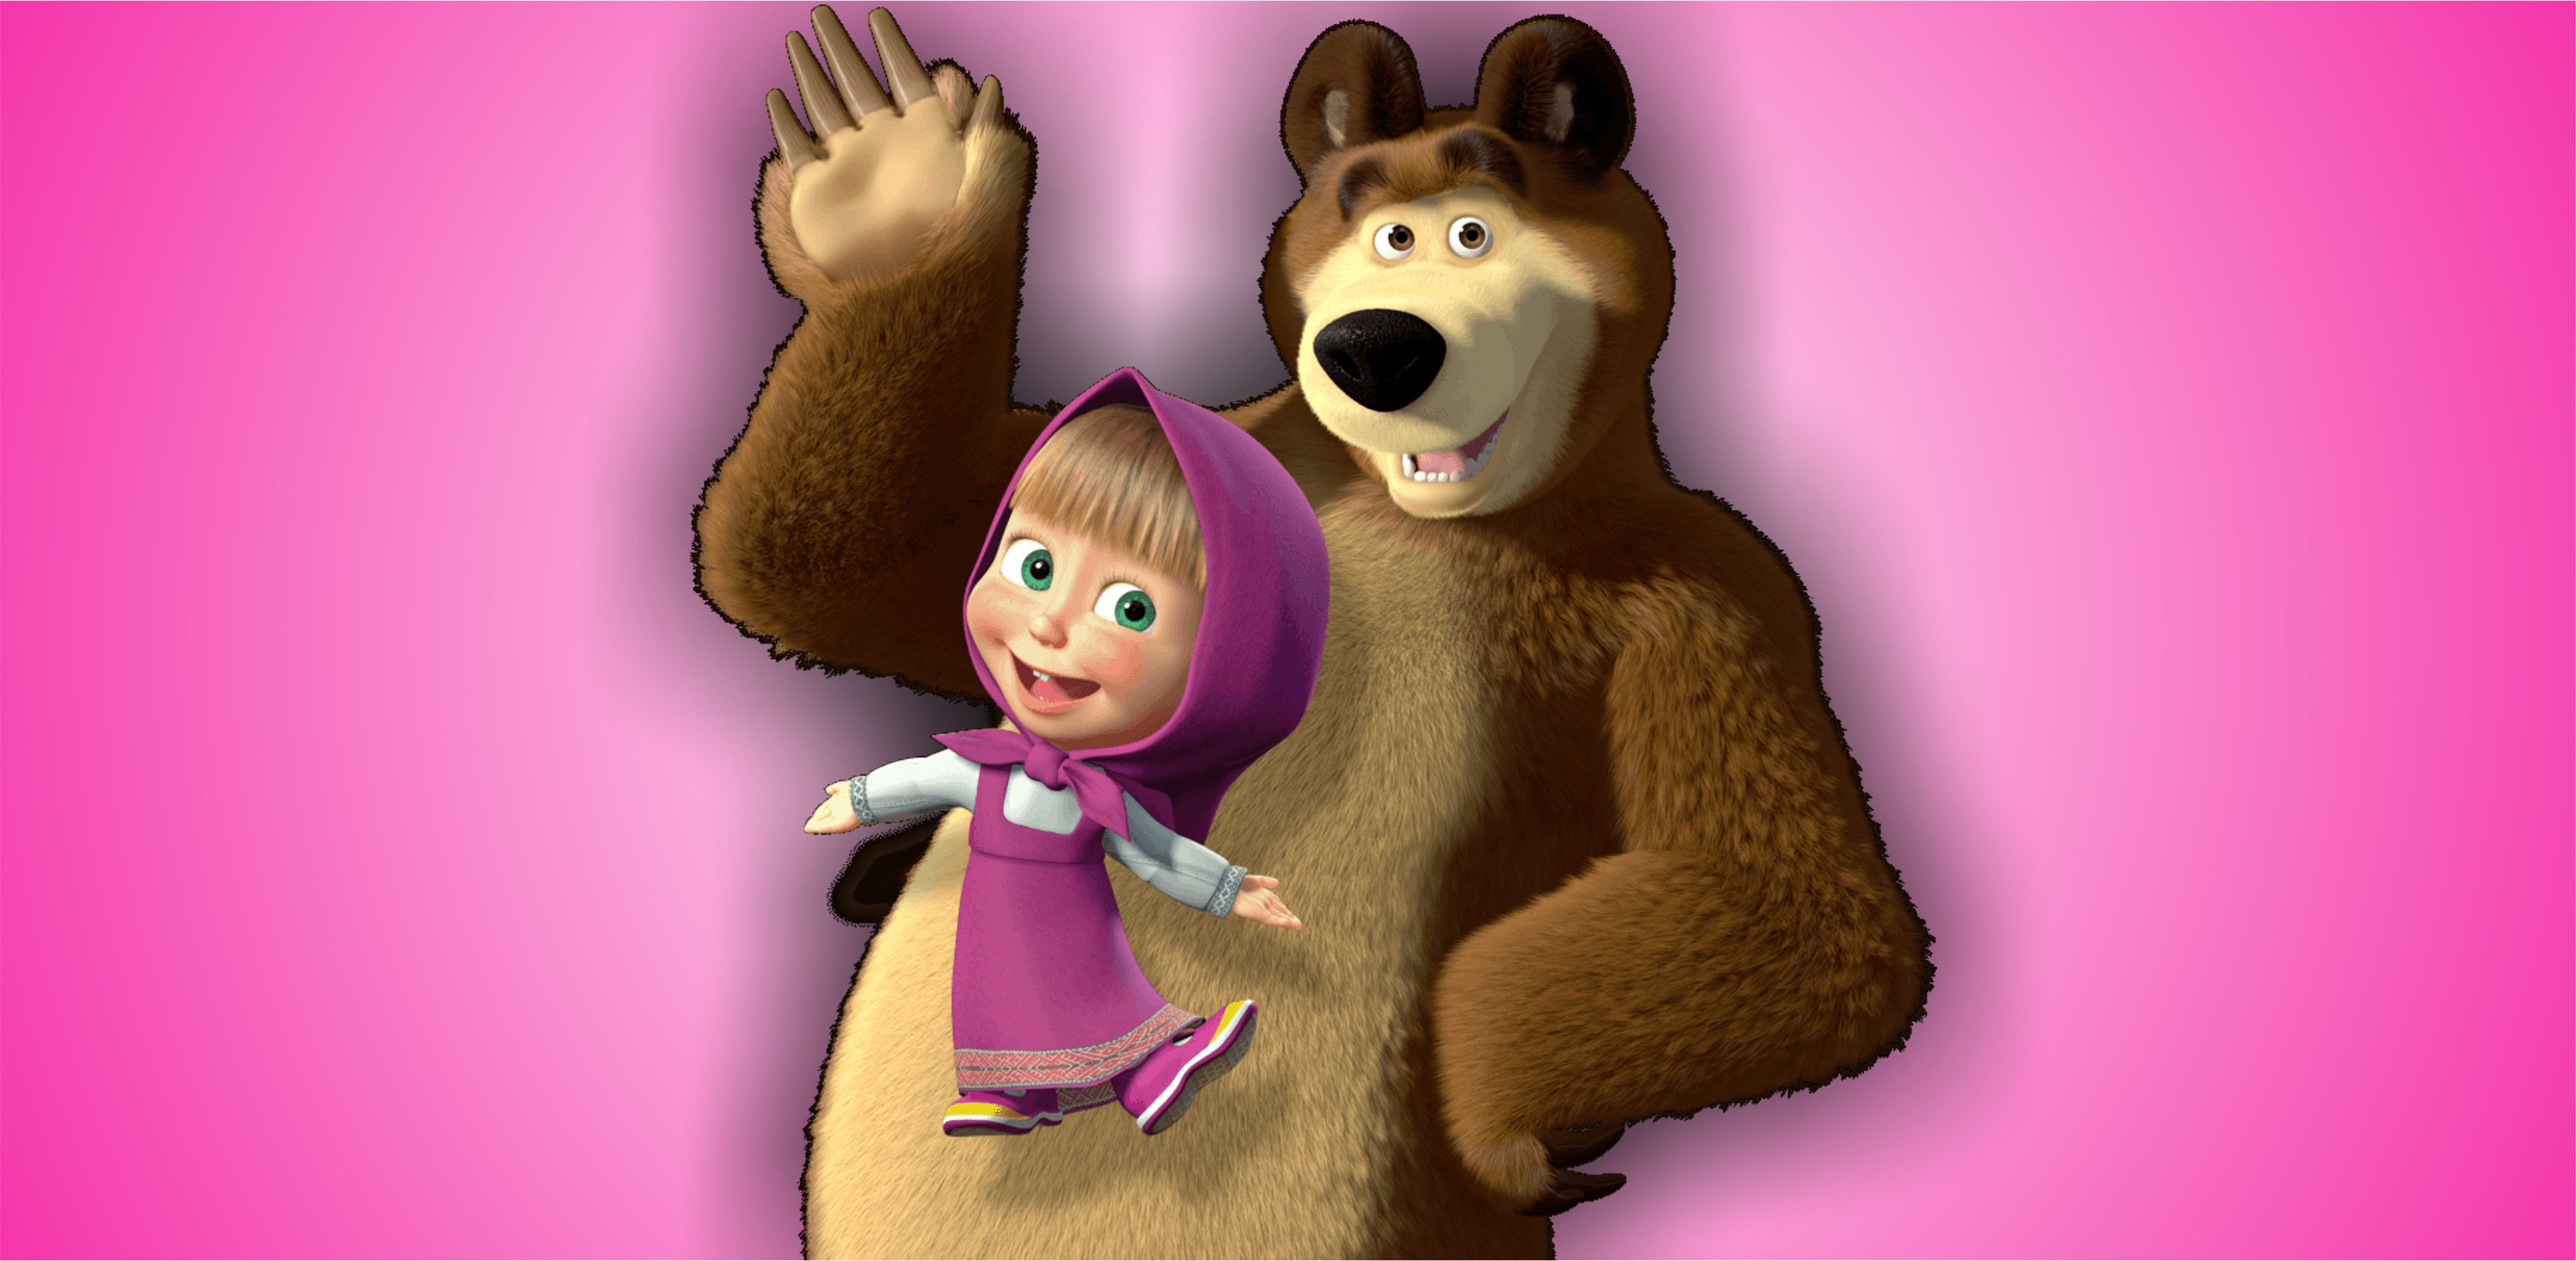 Most Viewed Masha And The Bear Wallpapers